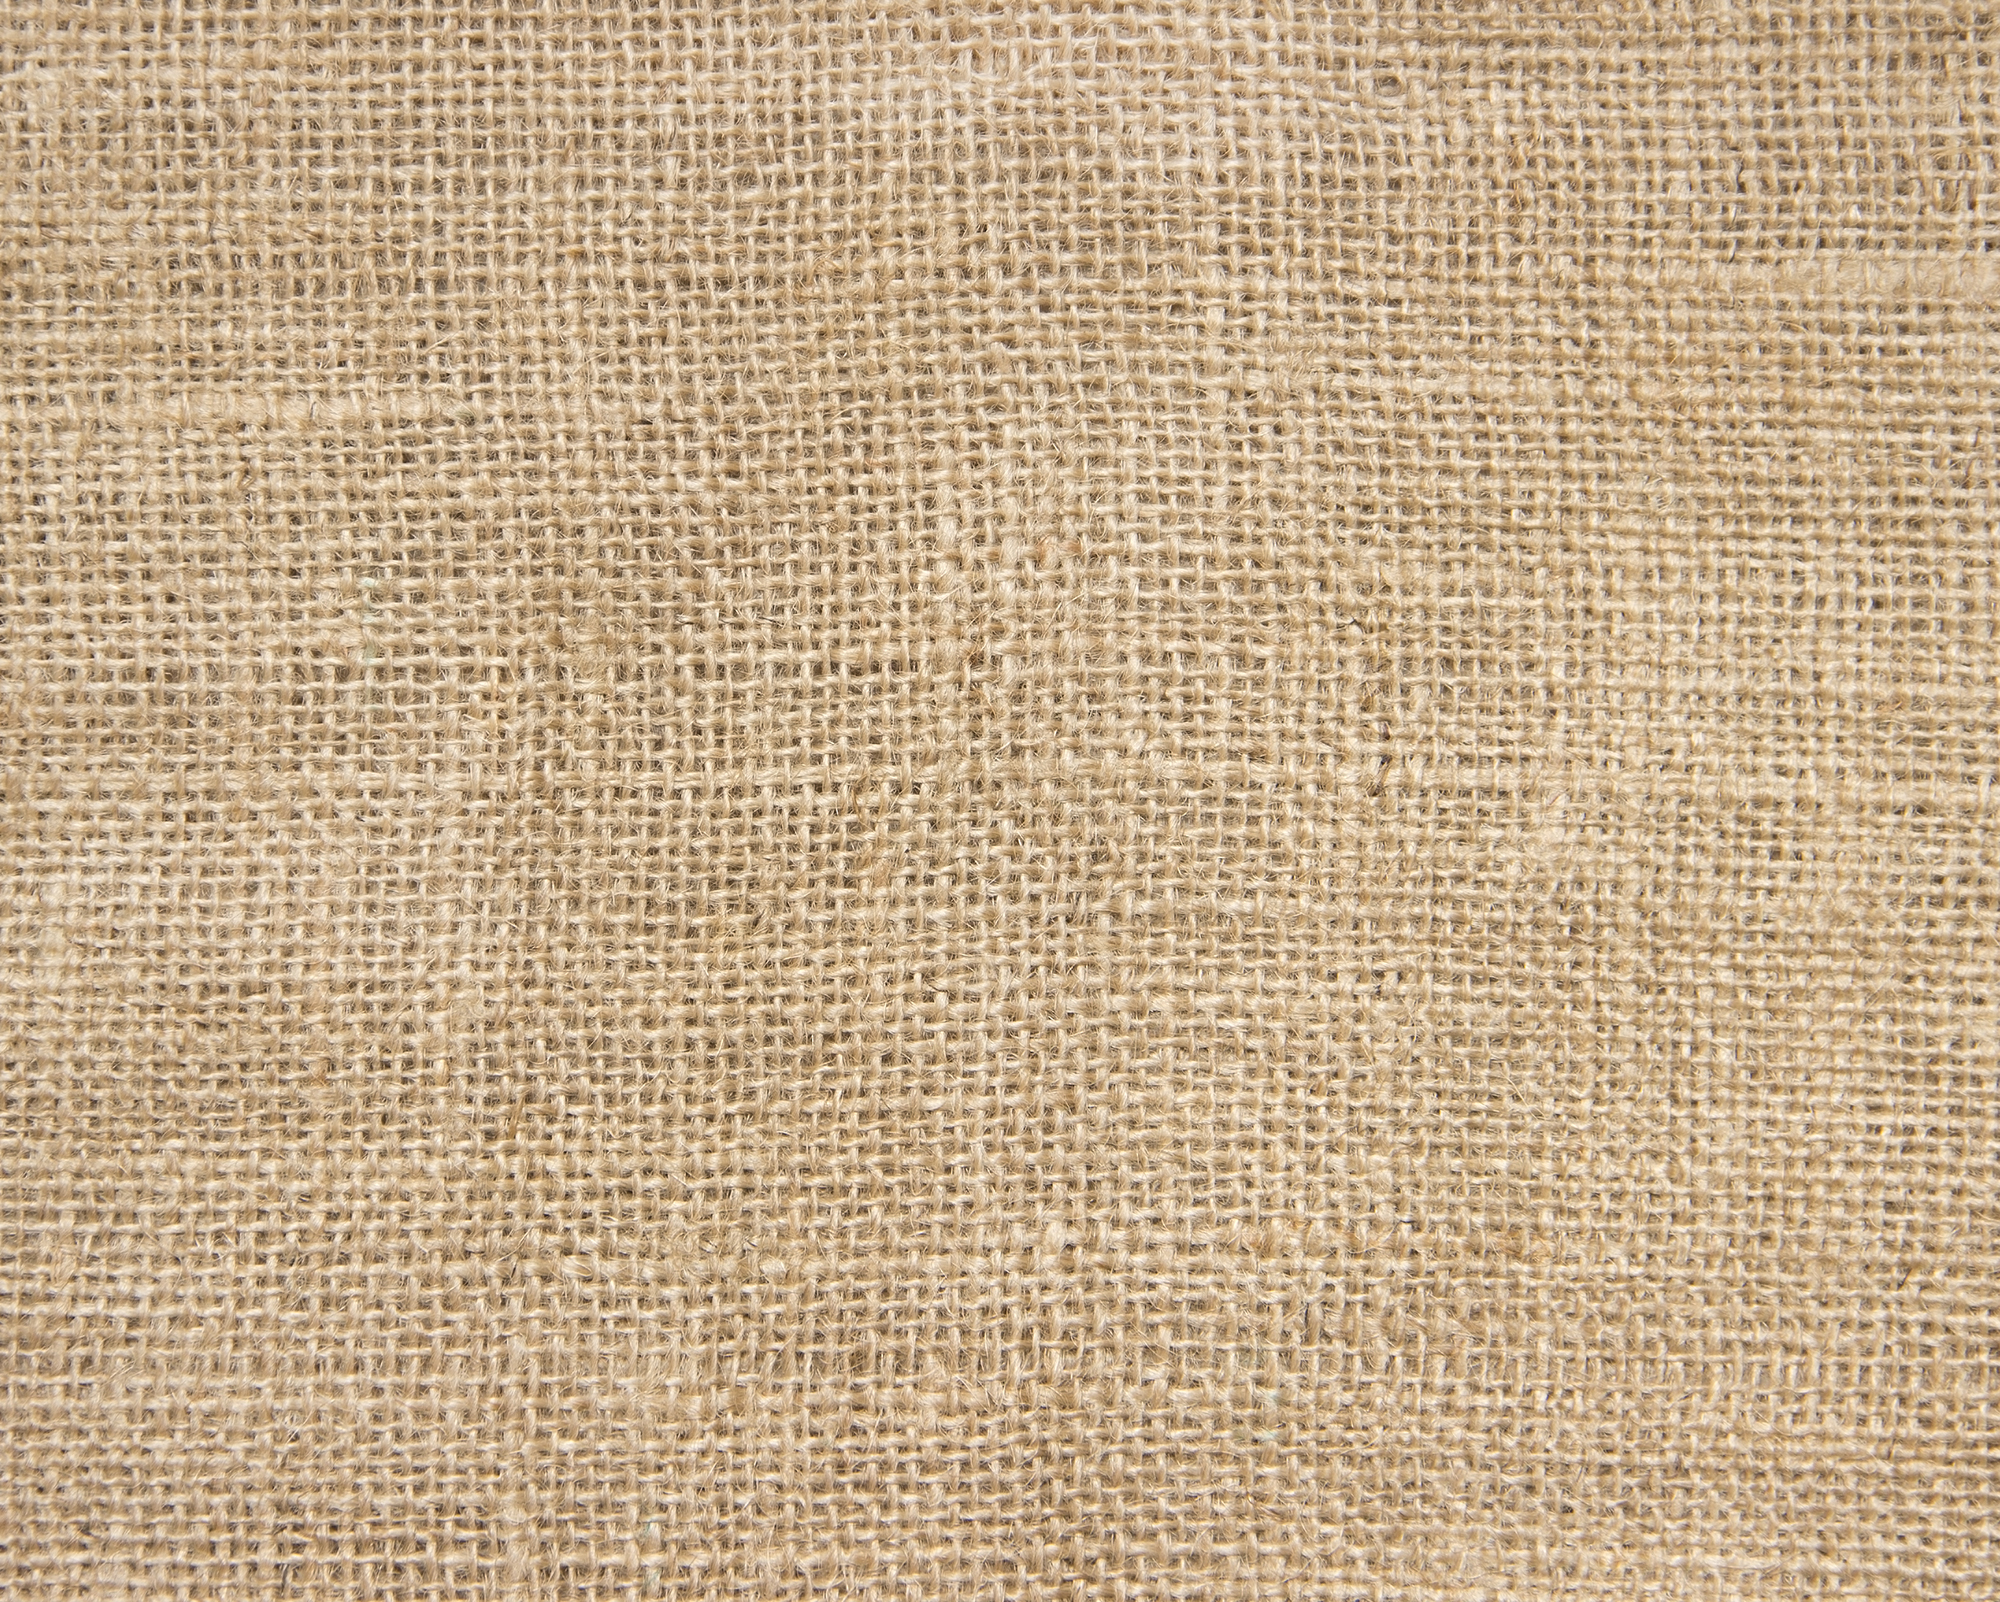 Burlap Background Www Pixshark Com Images Galleries